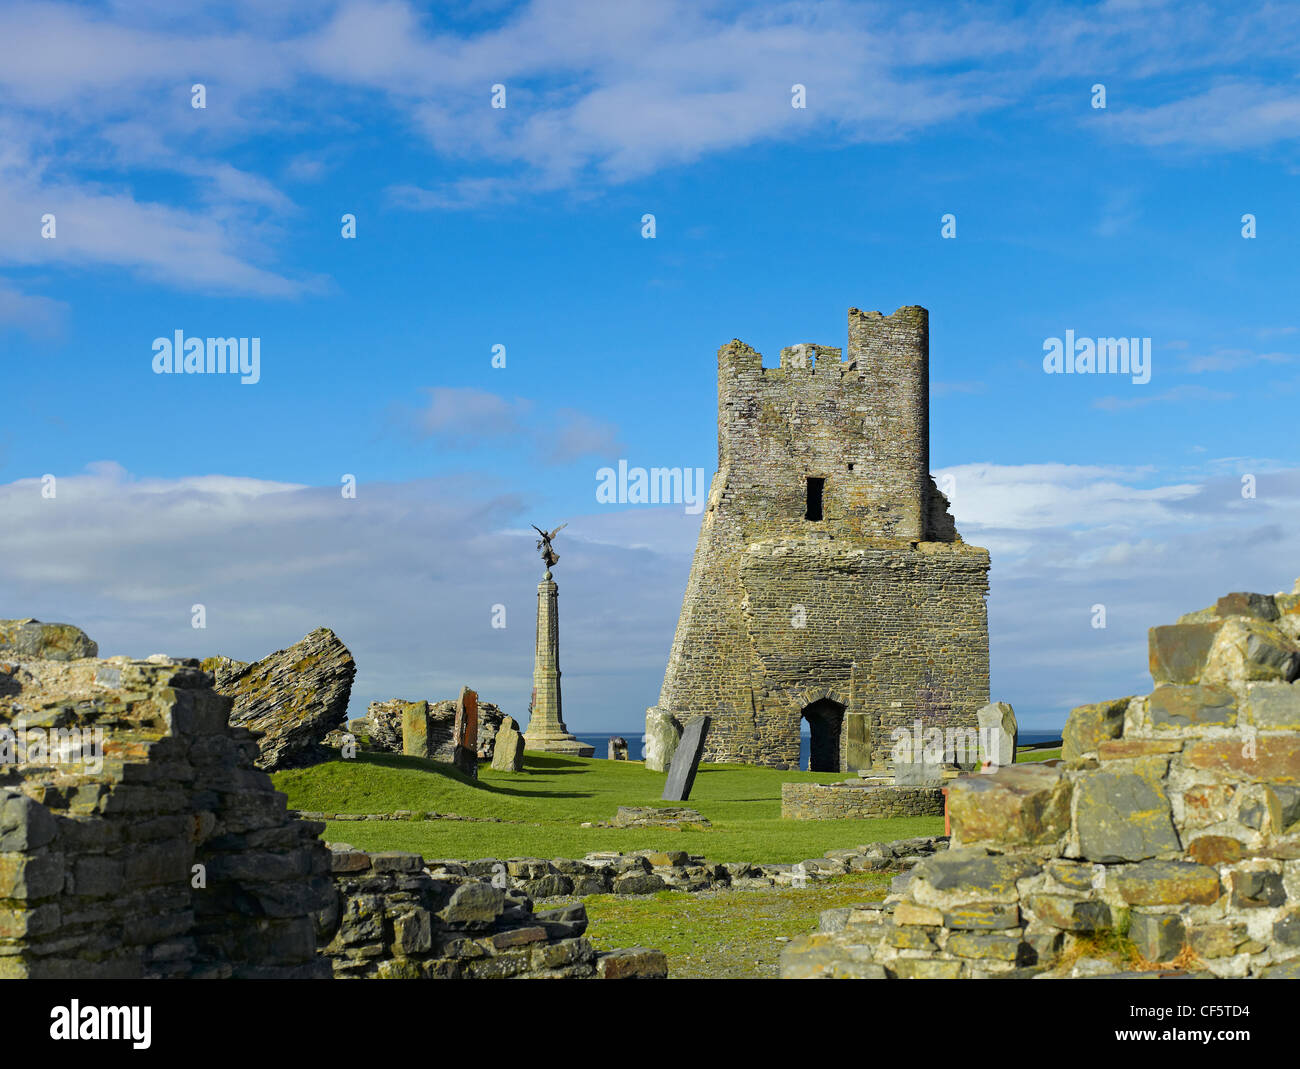 Ruins of the 13th century Aberystwyth Castle. - Stock Image